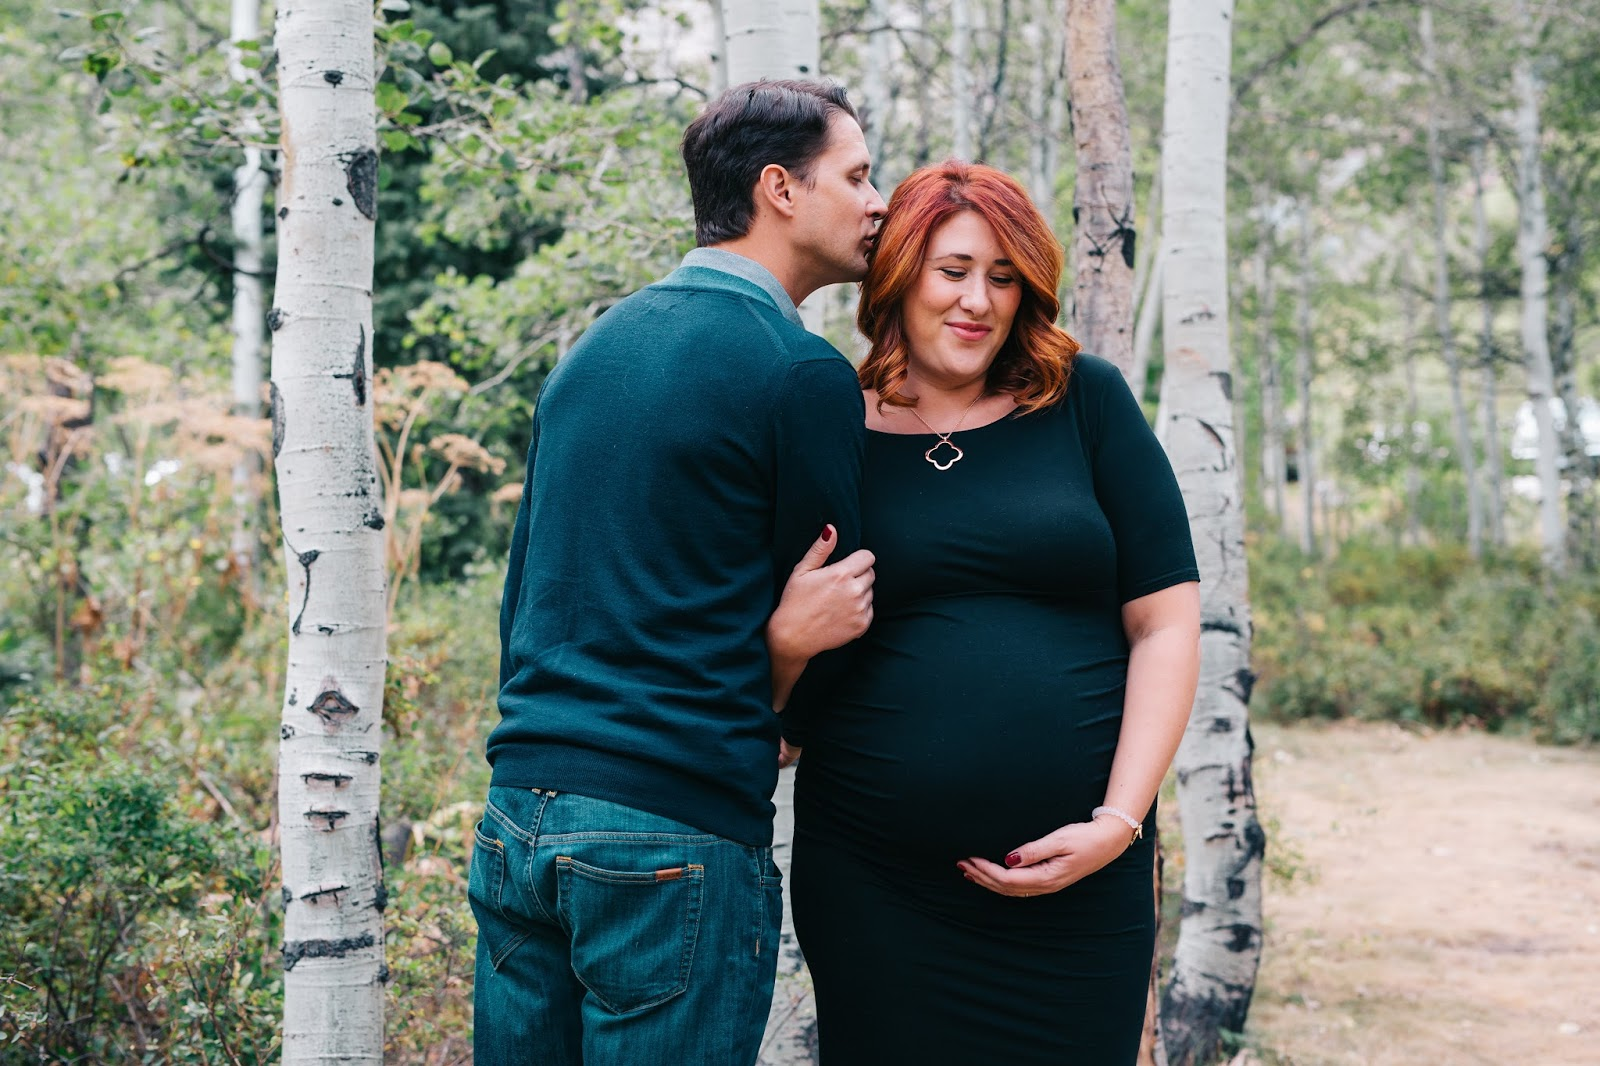 sundance mountain resort, maternity photography session